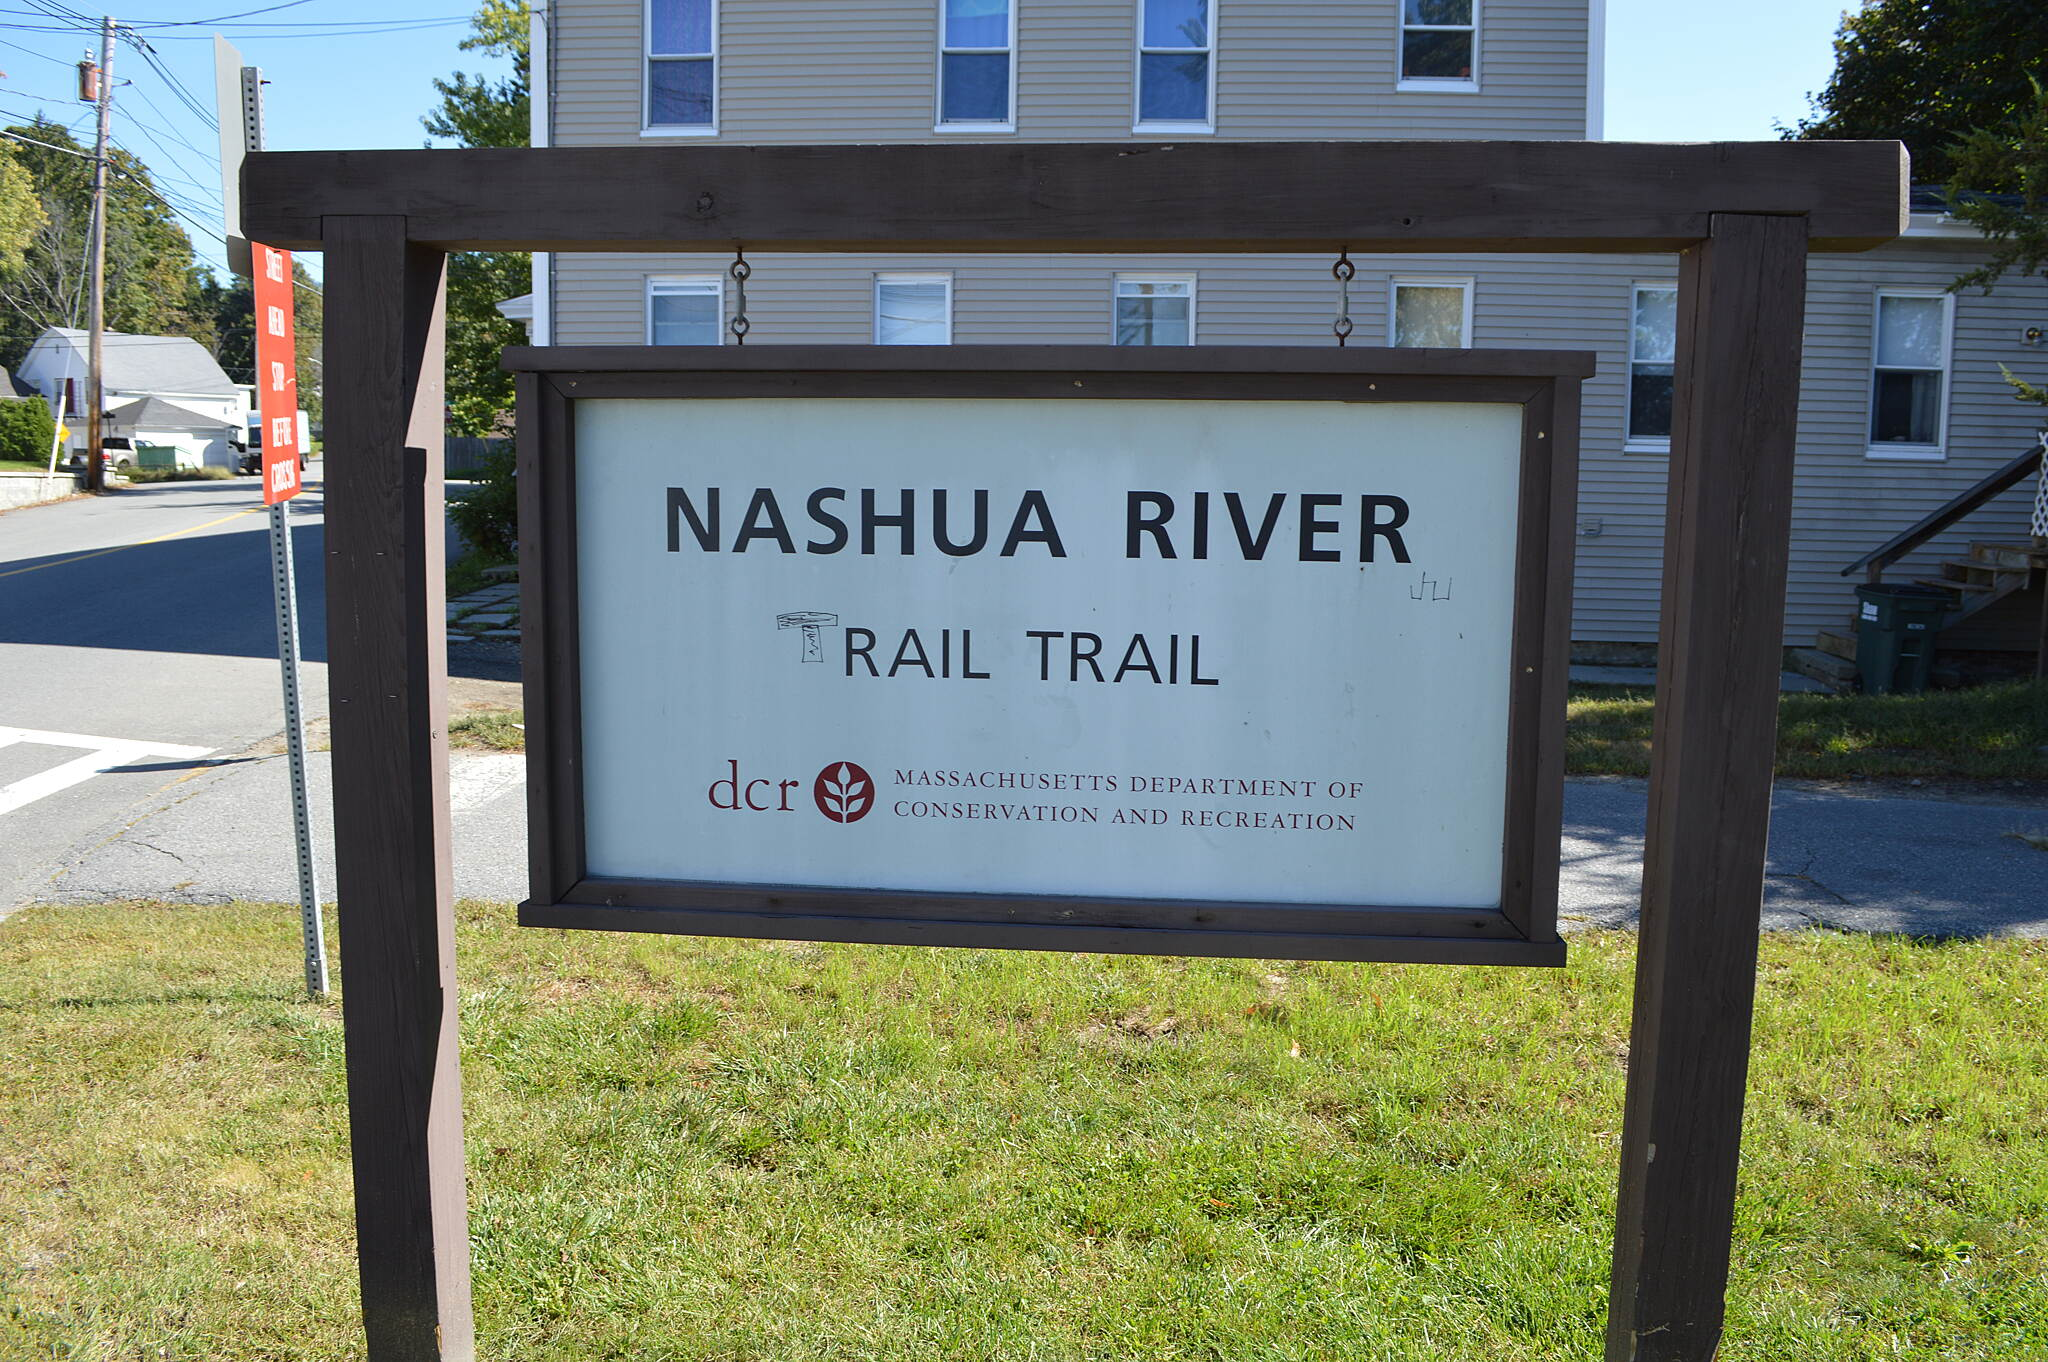 Nashua River Rail Trail Nashua River Rail Trail Great Trail